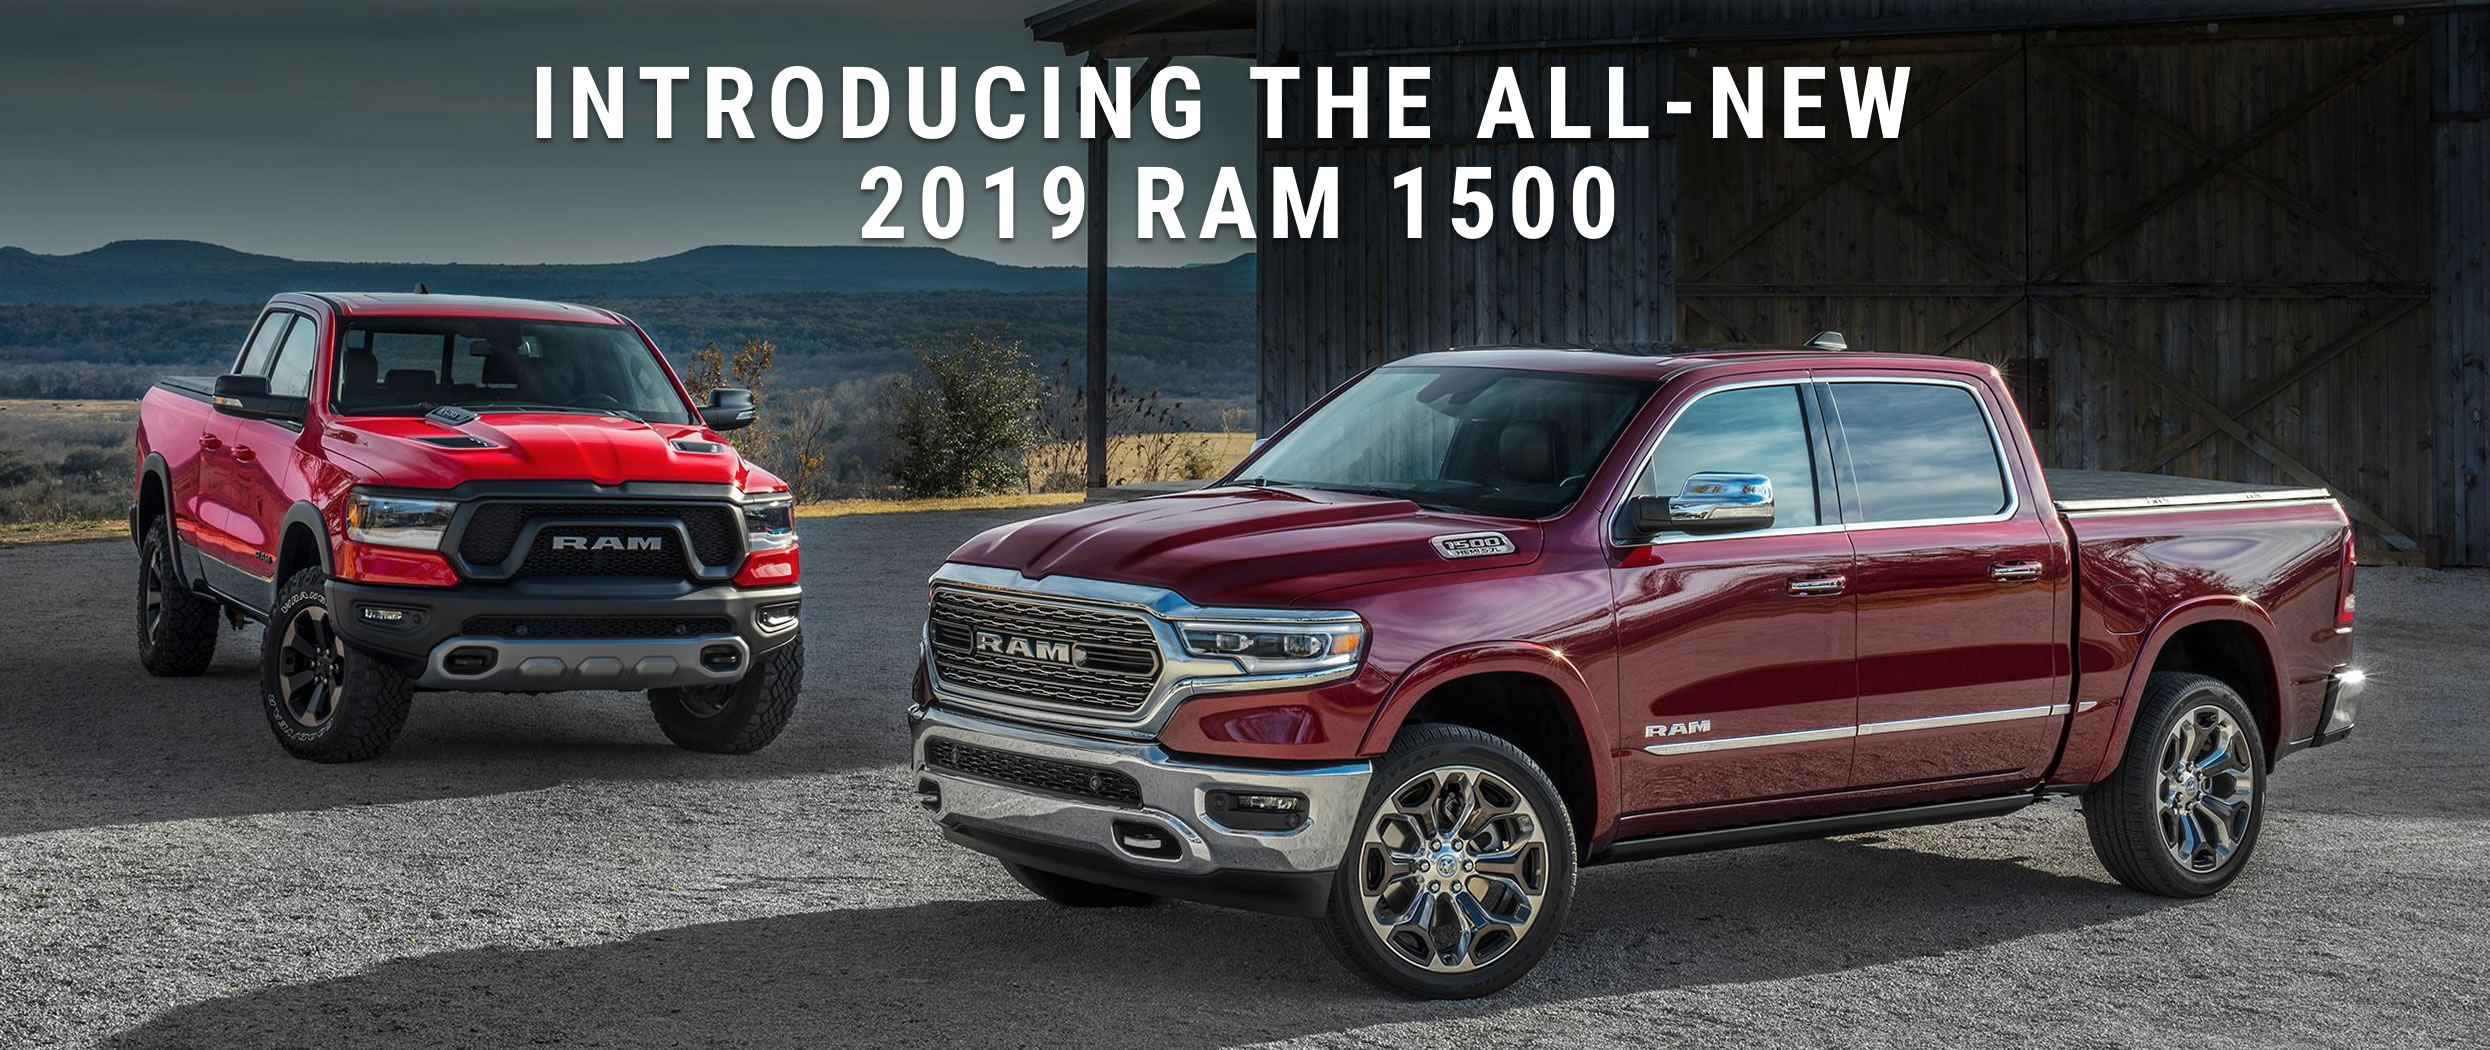 2019 Ram 1500 for sale in Edmonton - All New for 2019!